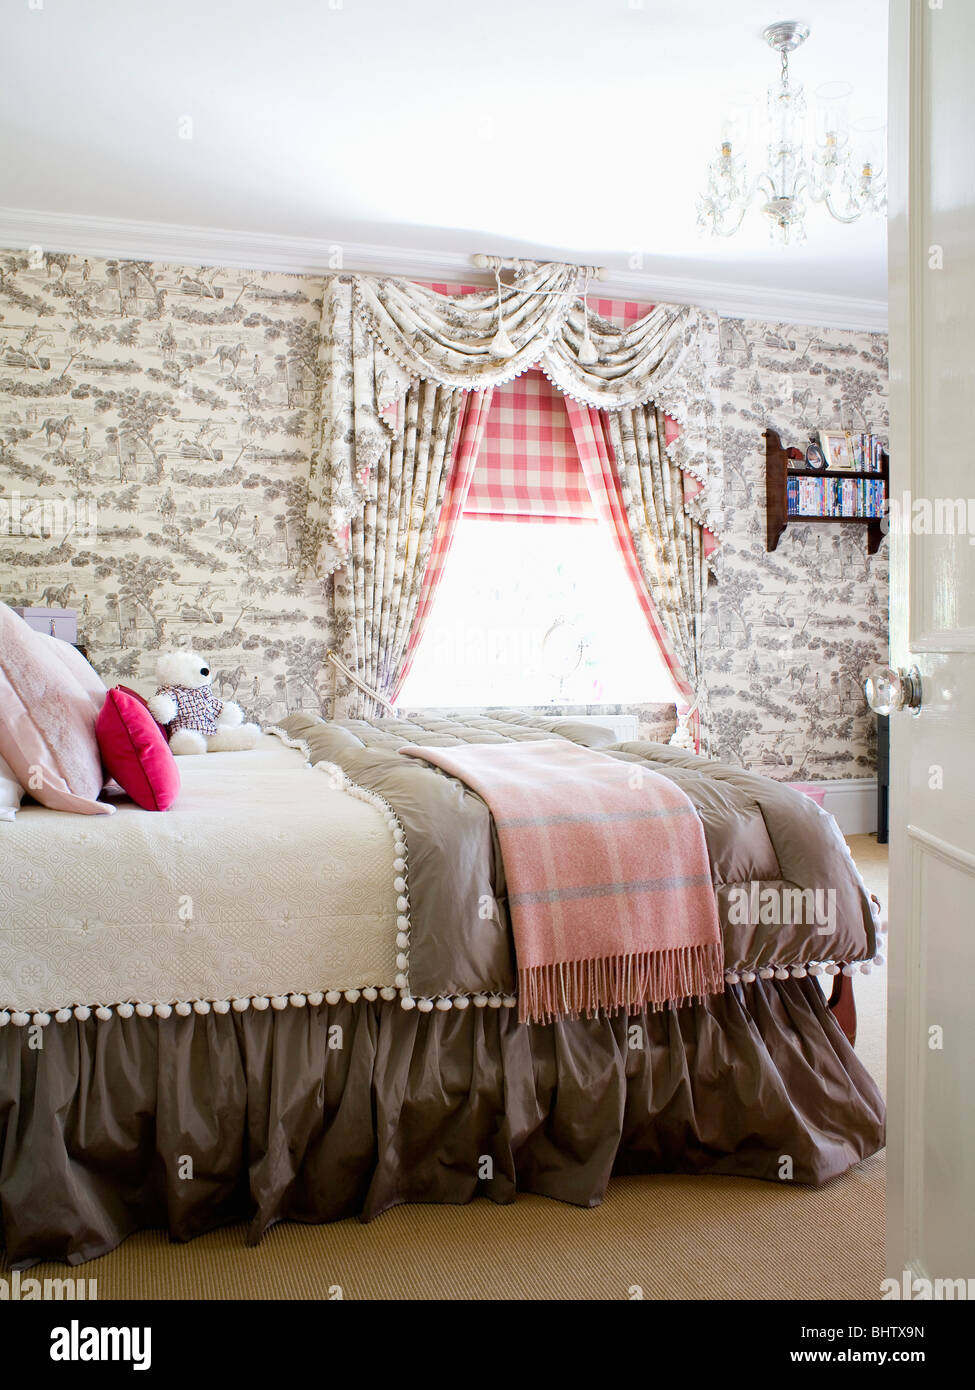 grey toile de jouy wallpaper and curtains in country bedroom with red